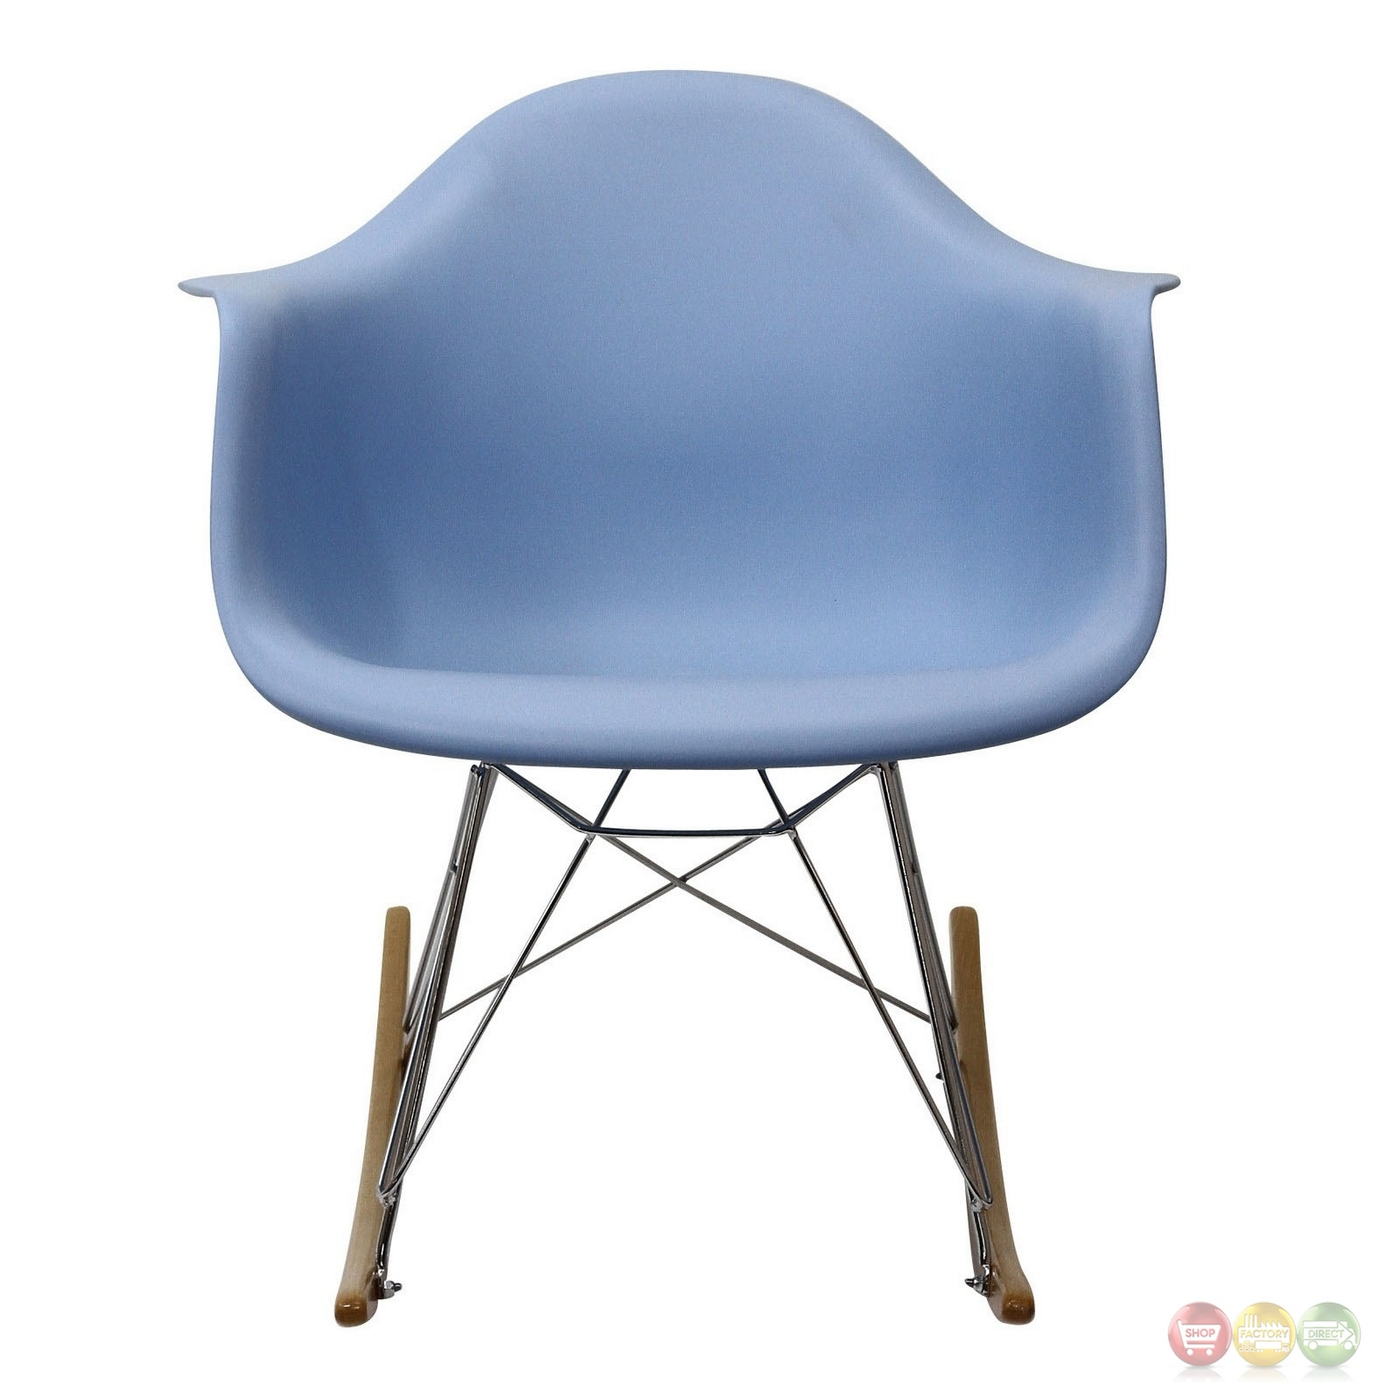 Rocker Molded Plastic Rocking Lounge Chair With Chrome & Wood Base Blue